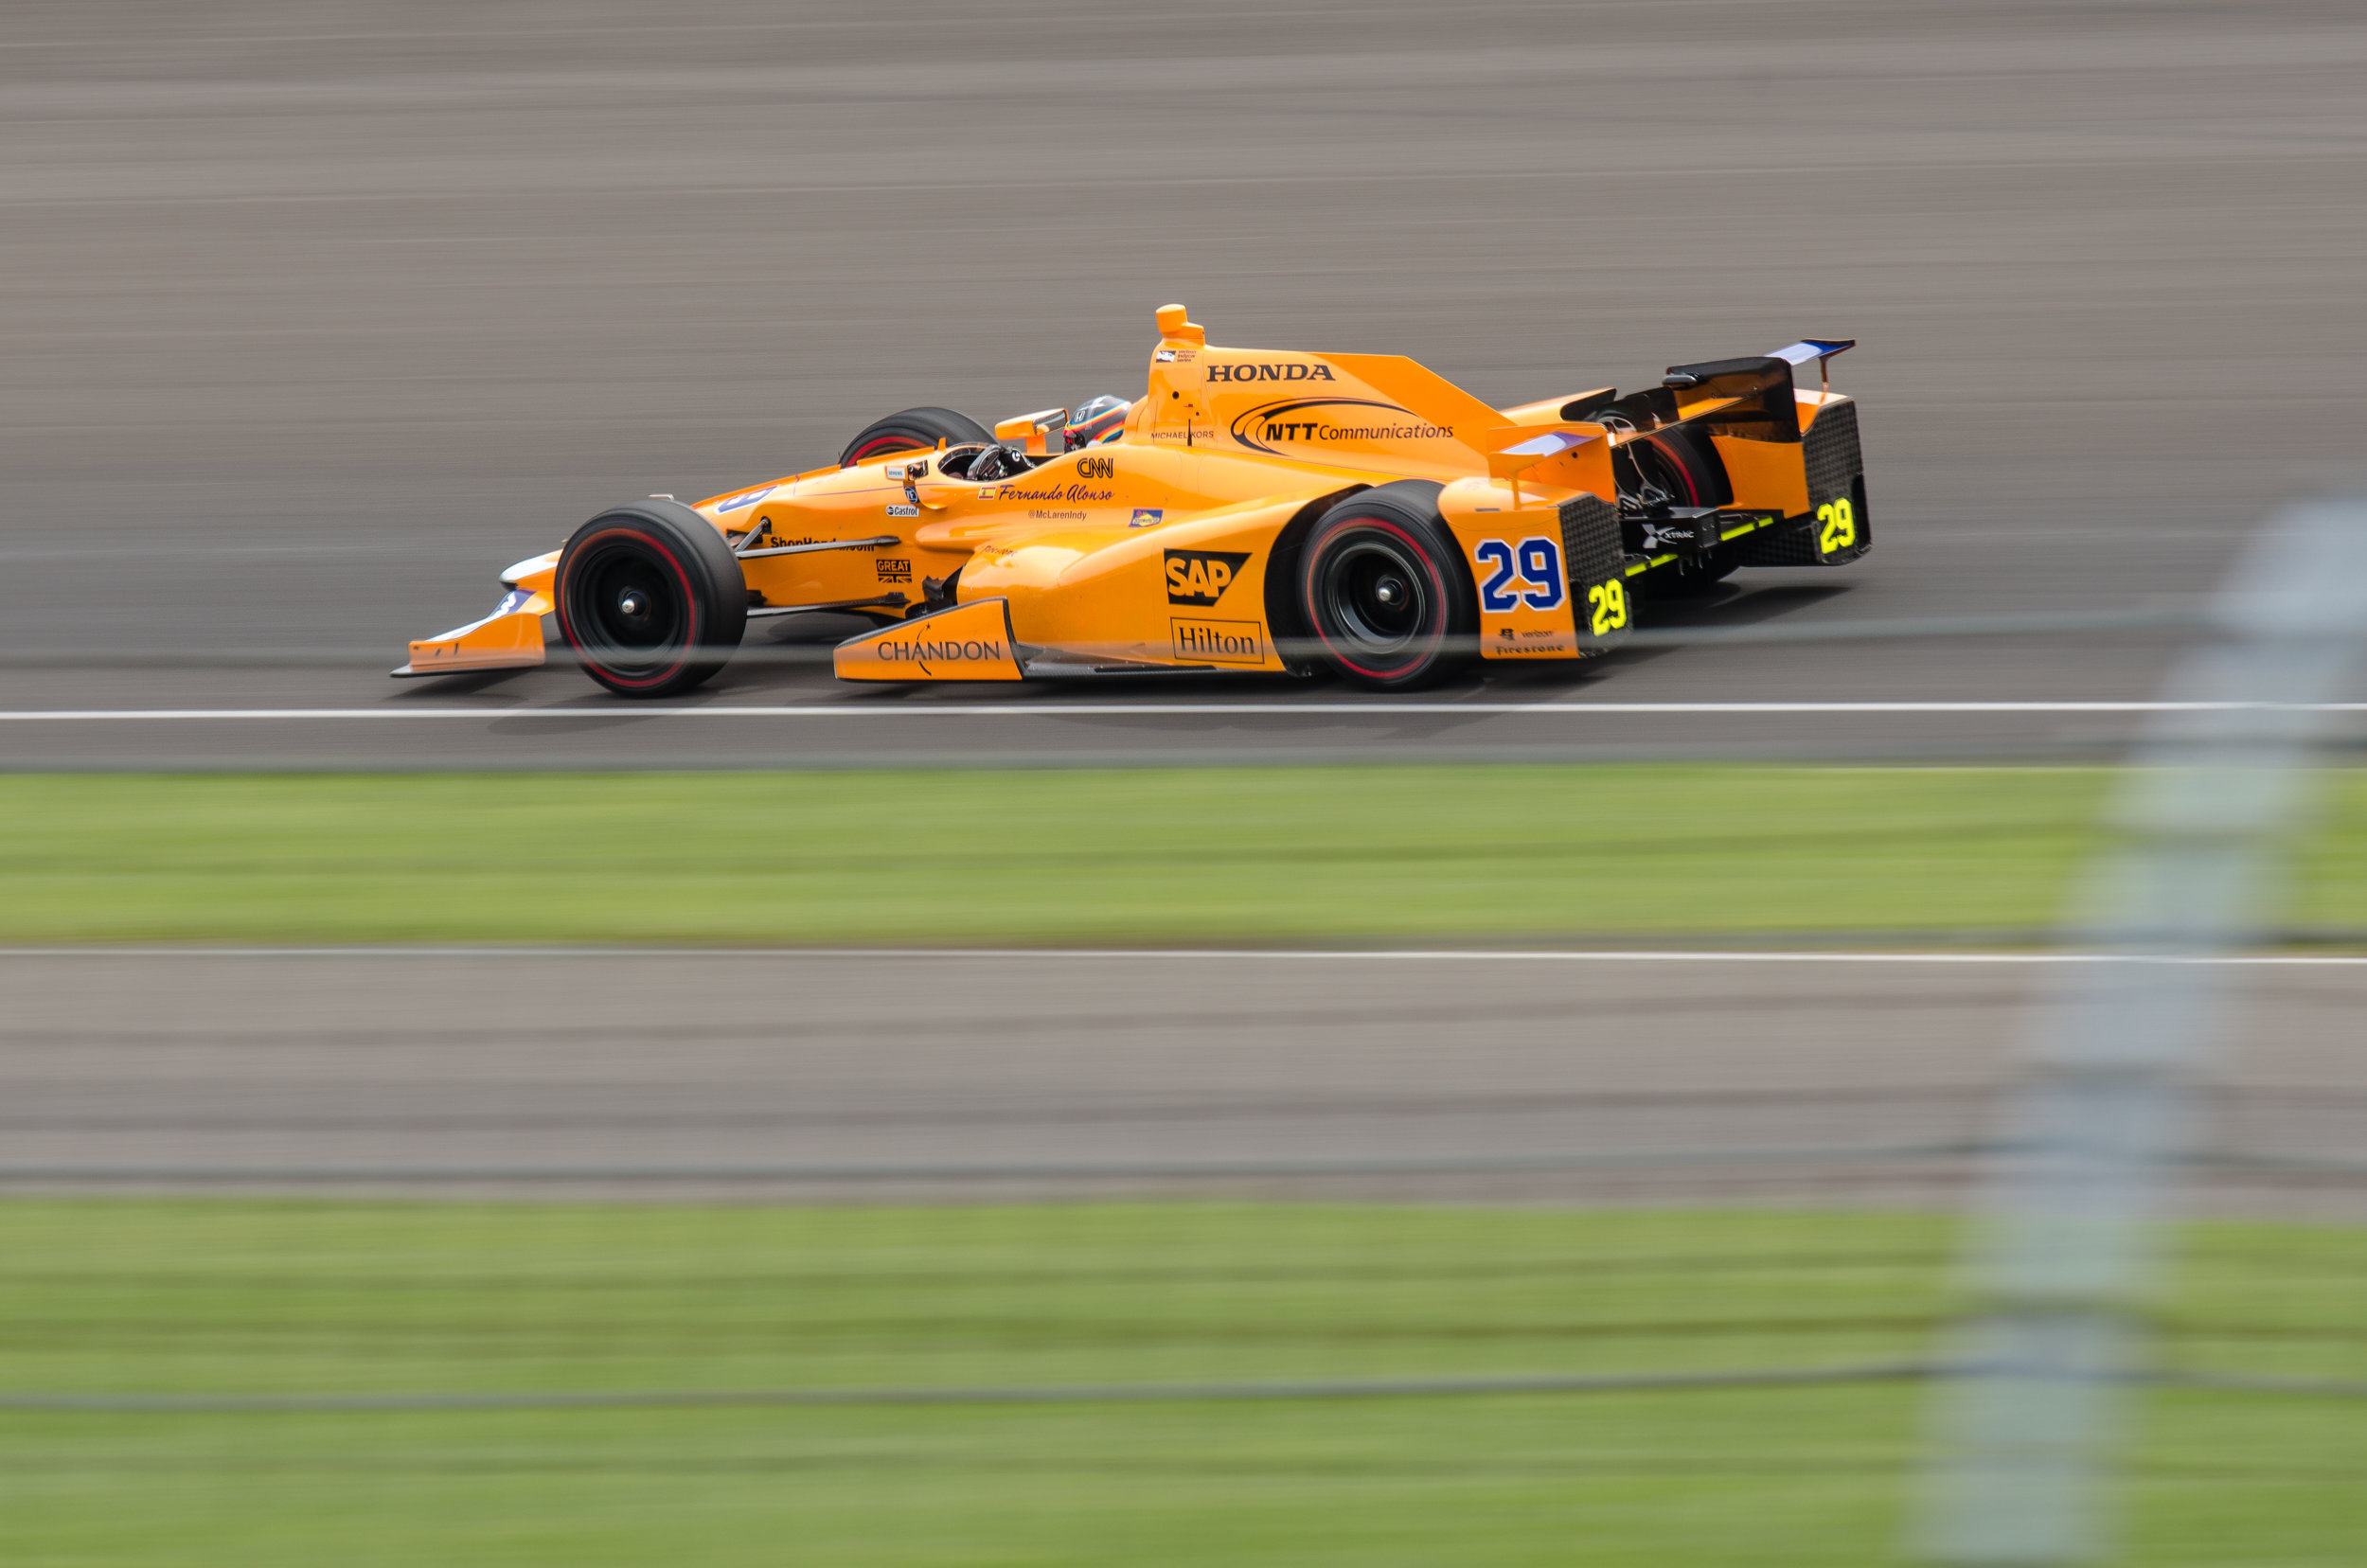 Alonso Indy Test (full size) (16 of 29).jpg